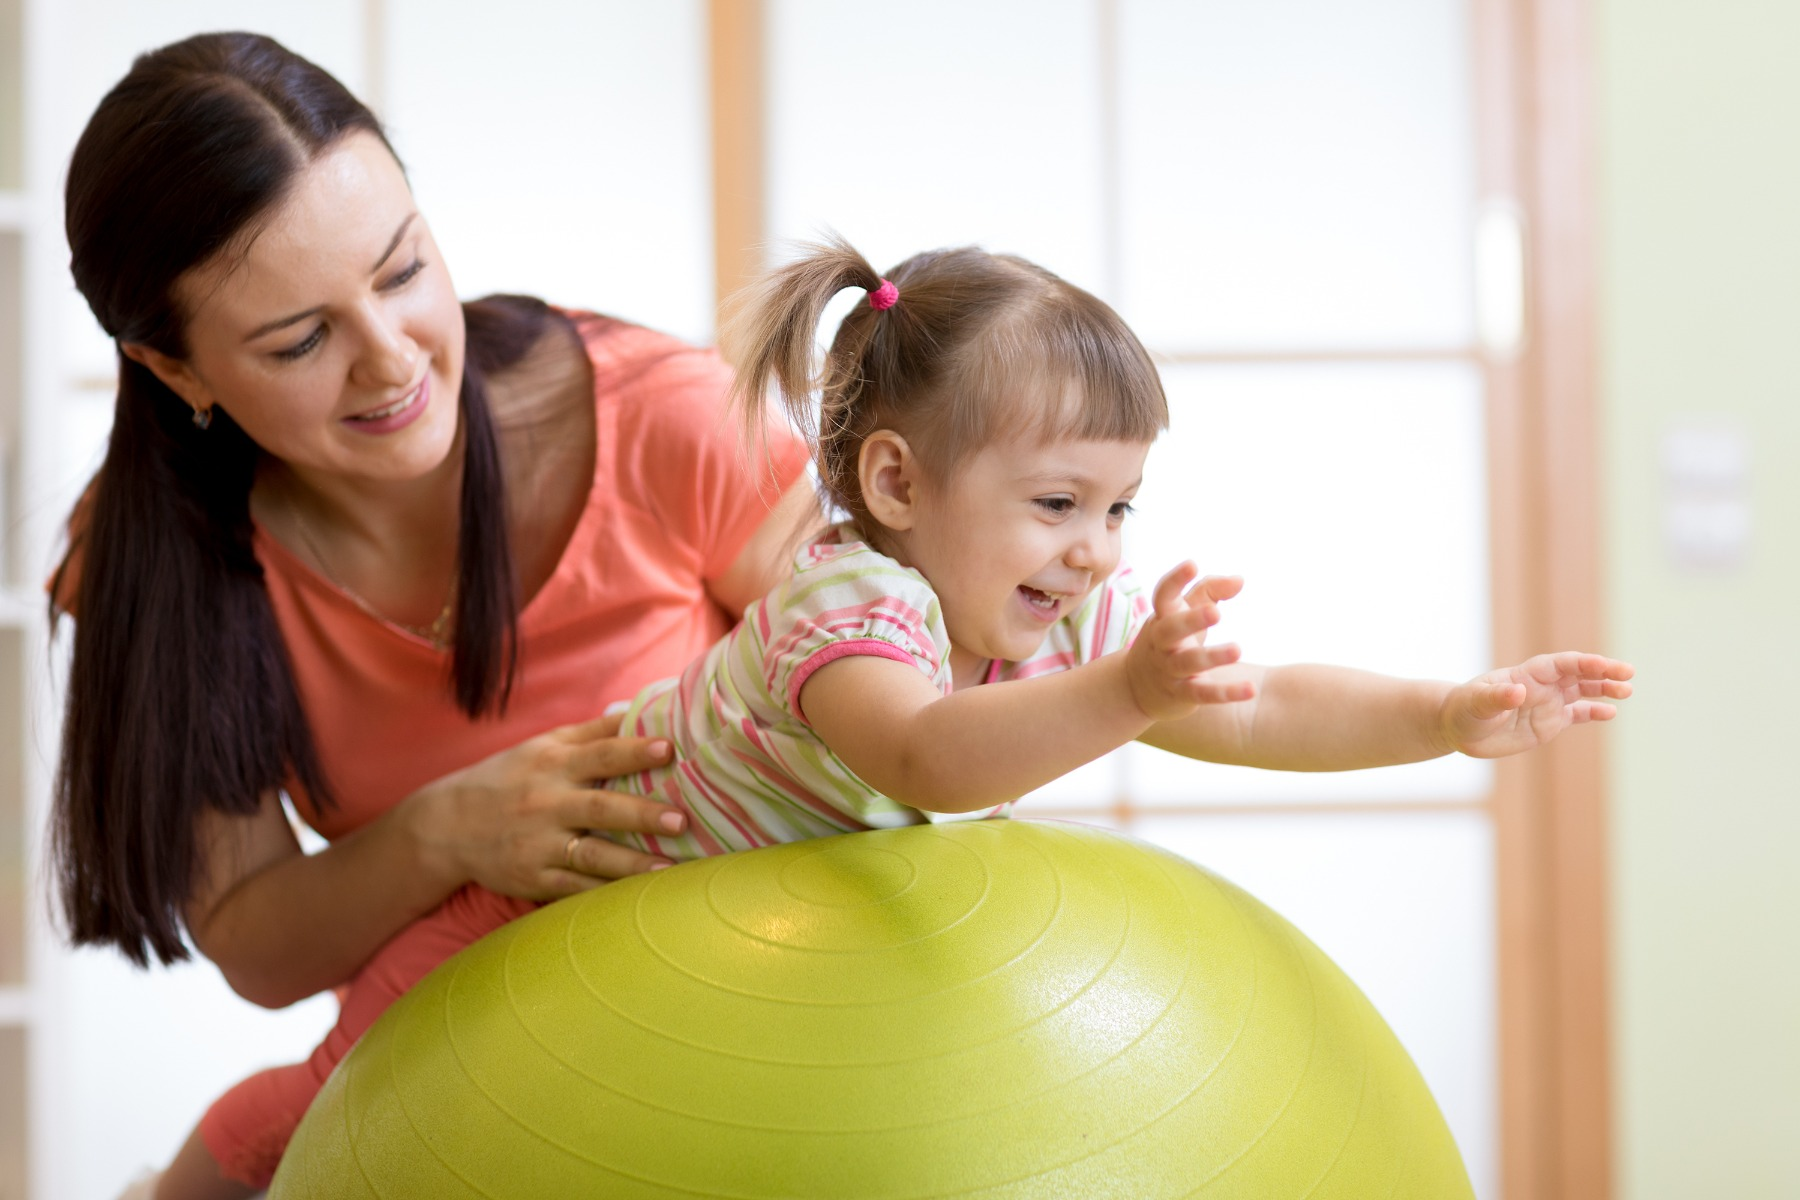 mother helping child on exercise ball